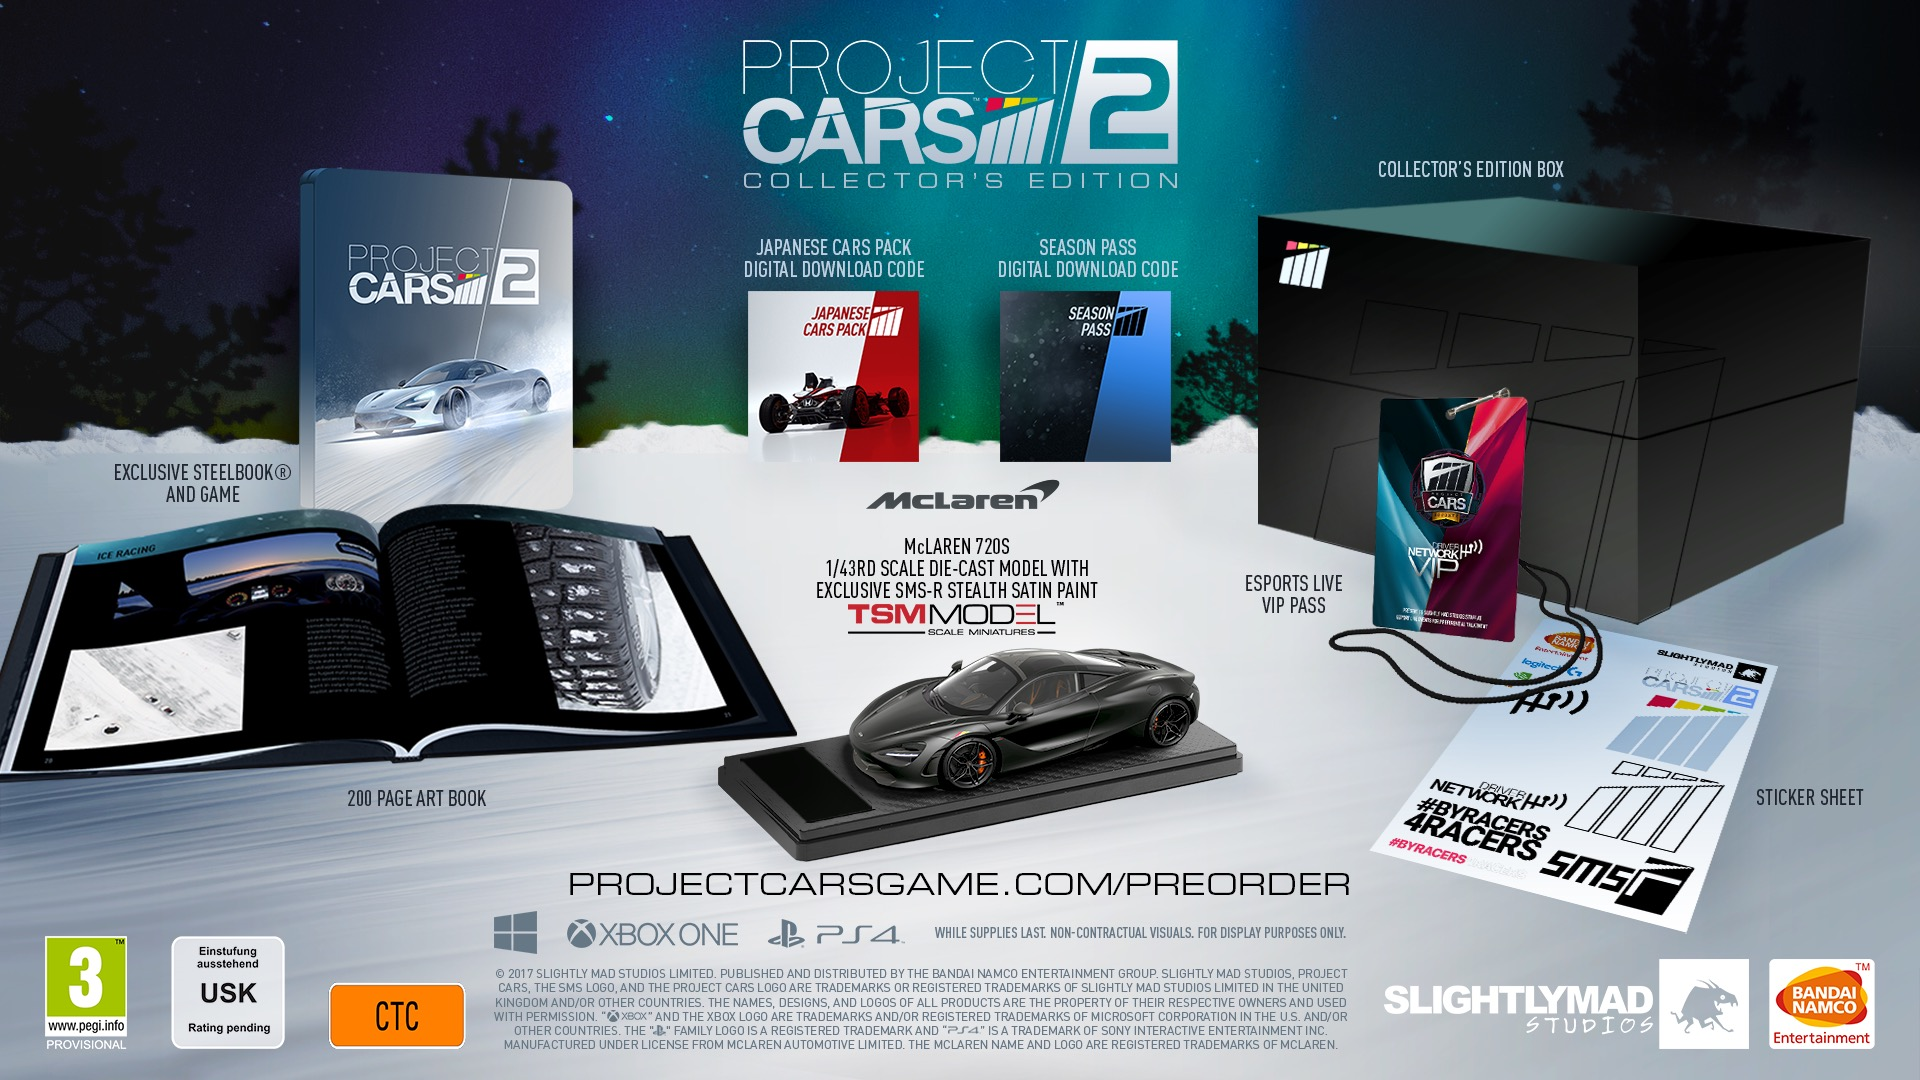 Stand a chance of winning this Project CARS 2 Collectors Edition for Xbox One